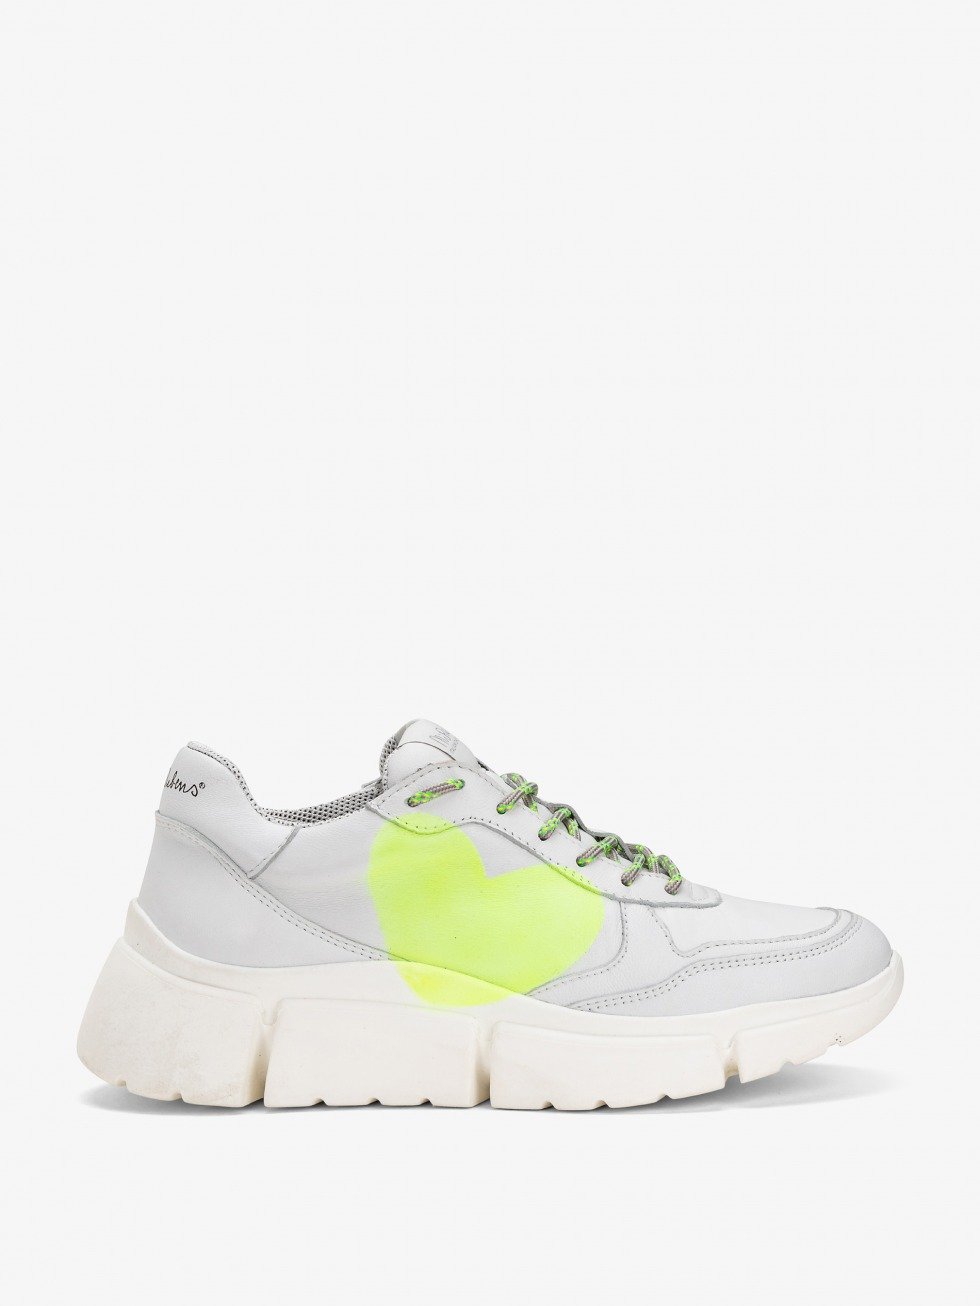 Stinger Chunky Sneakers - Yellow Fluo Star